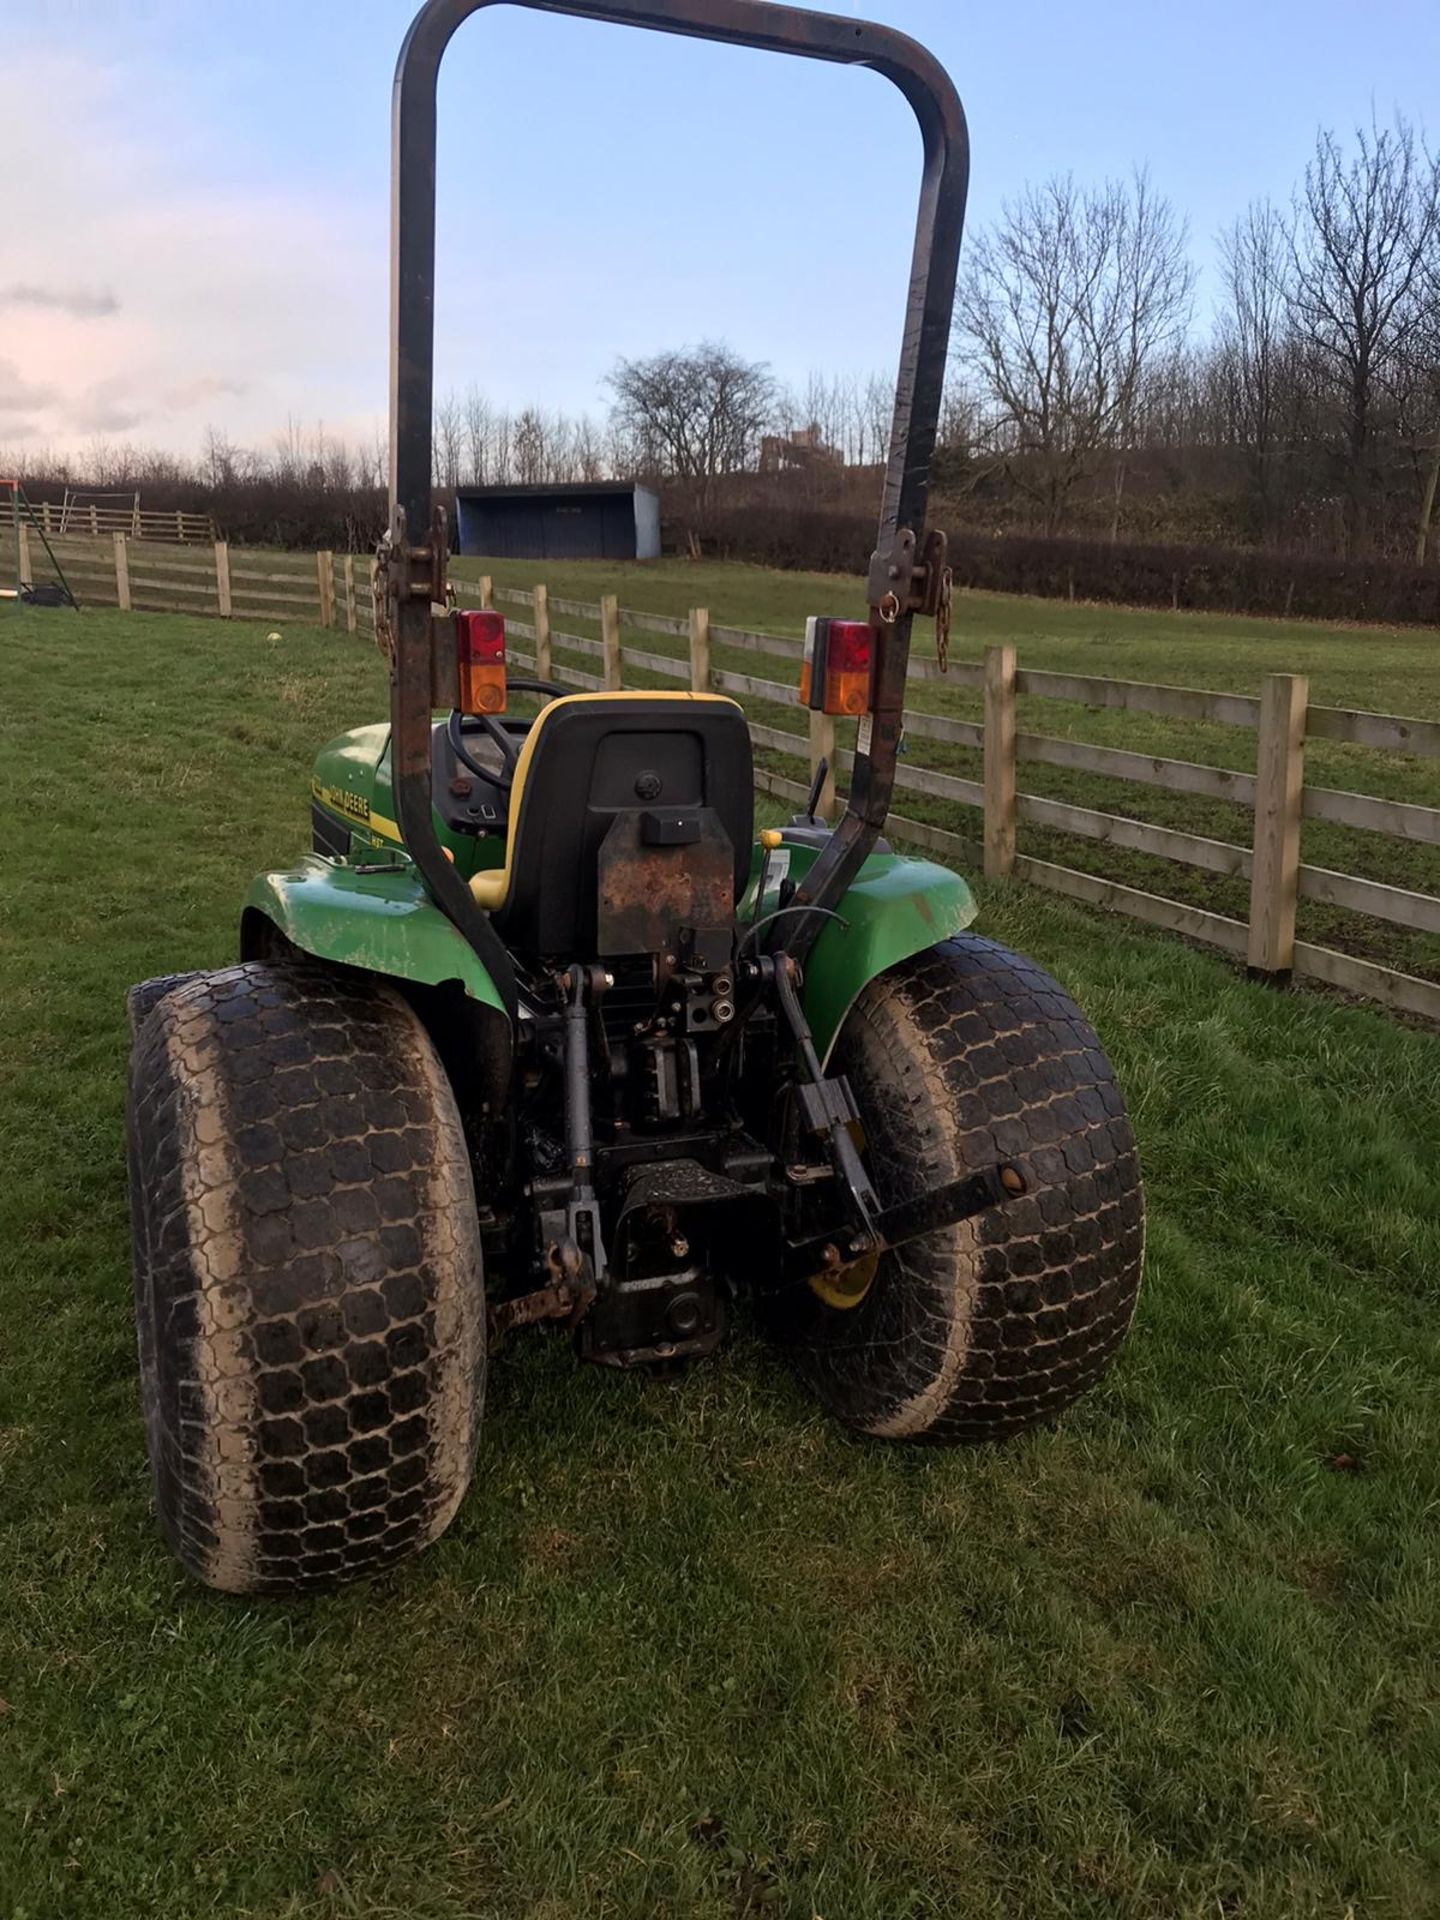 Los 109 - JOHN DEERE 4300 HST COMPACT TRACTOR 4WD, EX-COUNCIL, FIRST REG IN 2002 TO SOUTHERN DISTRICT COUNCIL